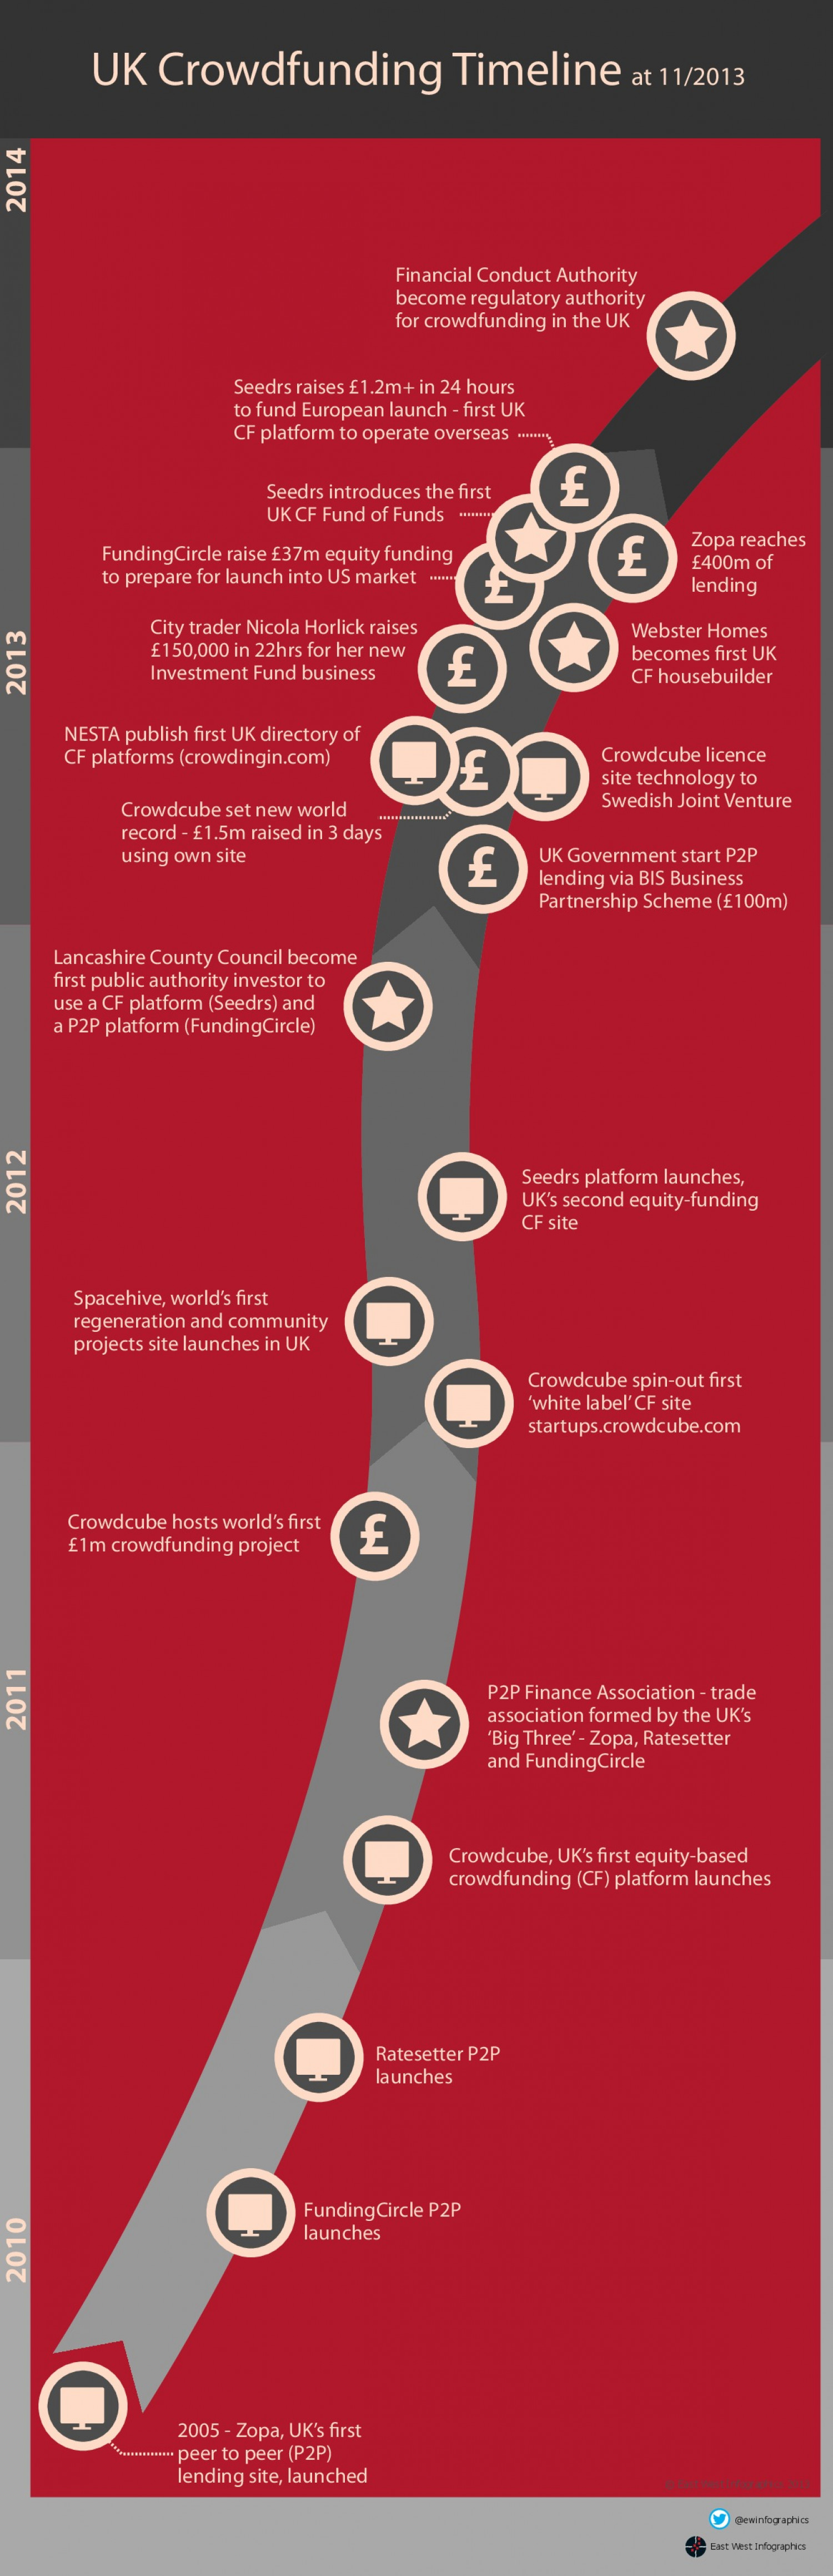 Crowdfunding Timeline of Key Events Infographic